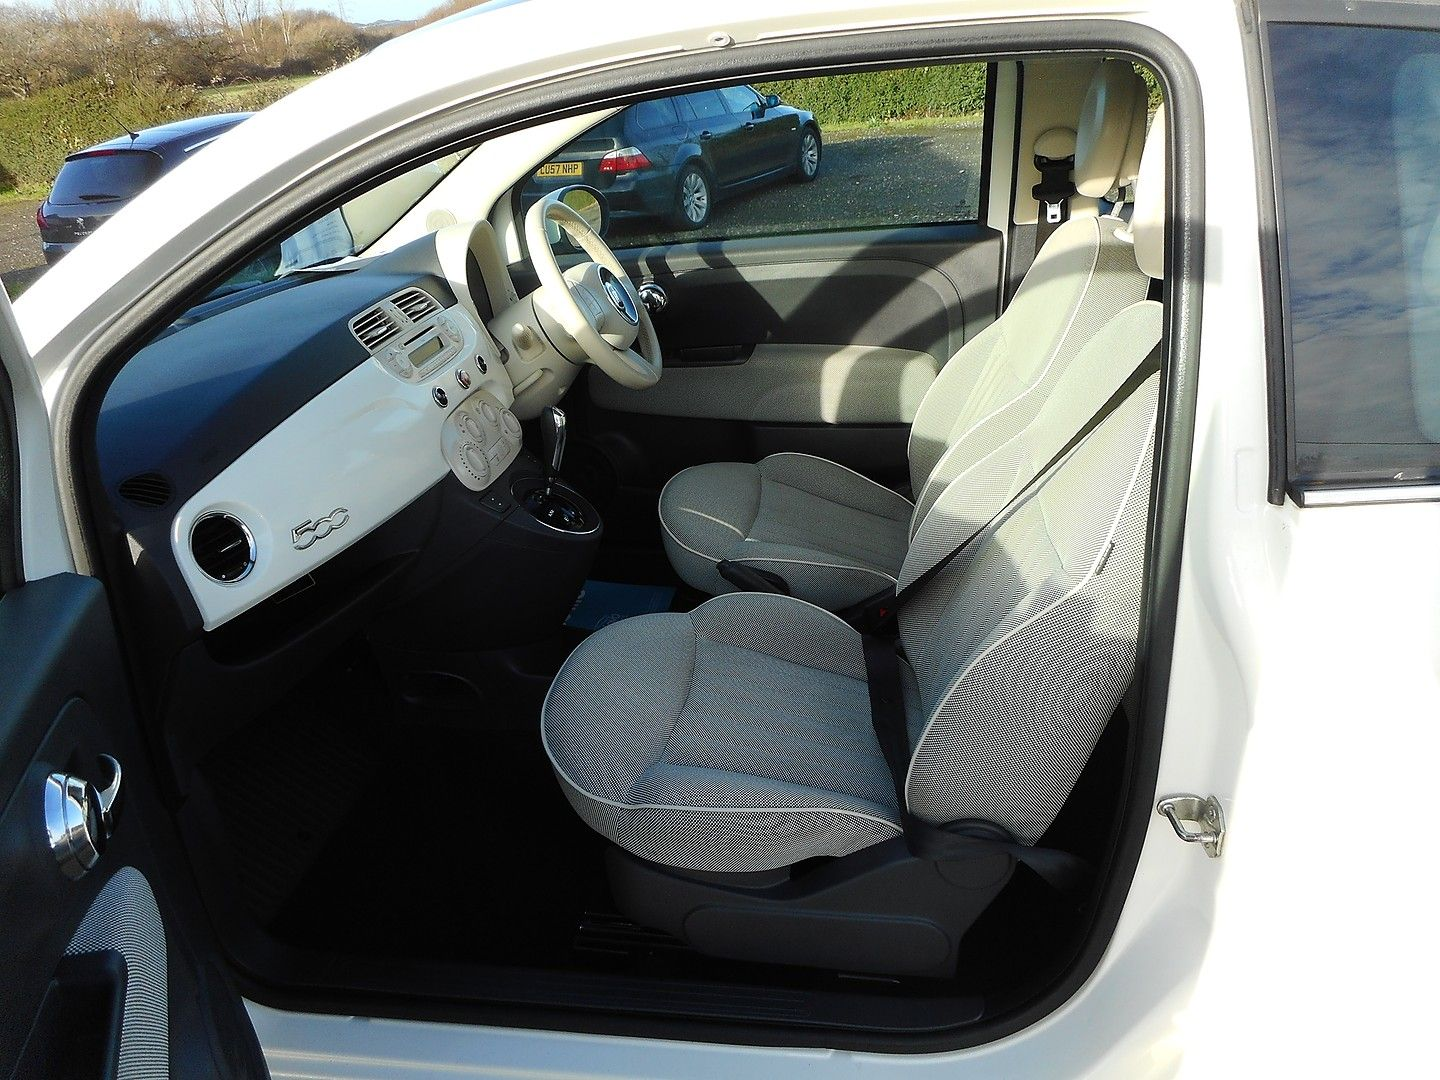 FIAT 500 1.2i Lounge S/S automatic (2013) - Picture 14